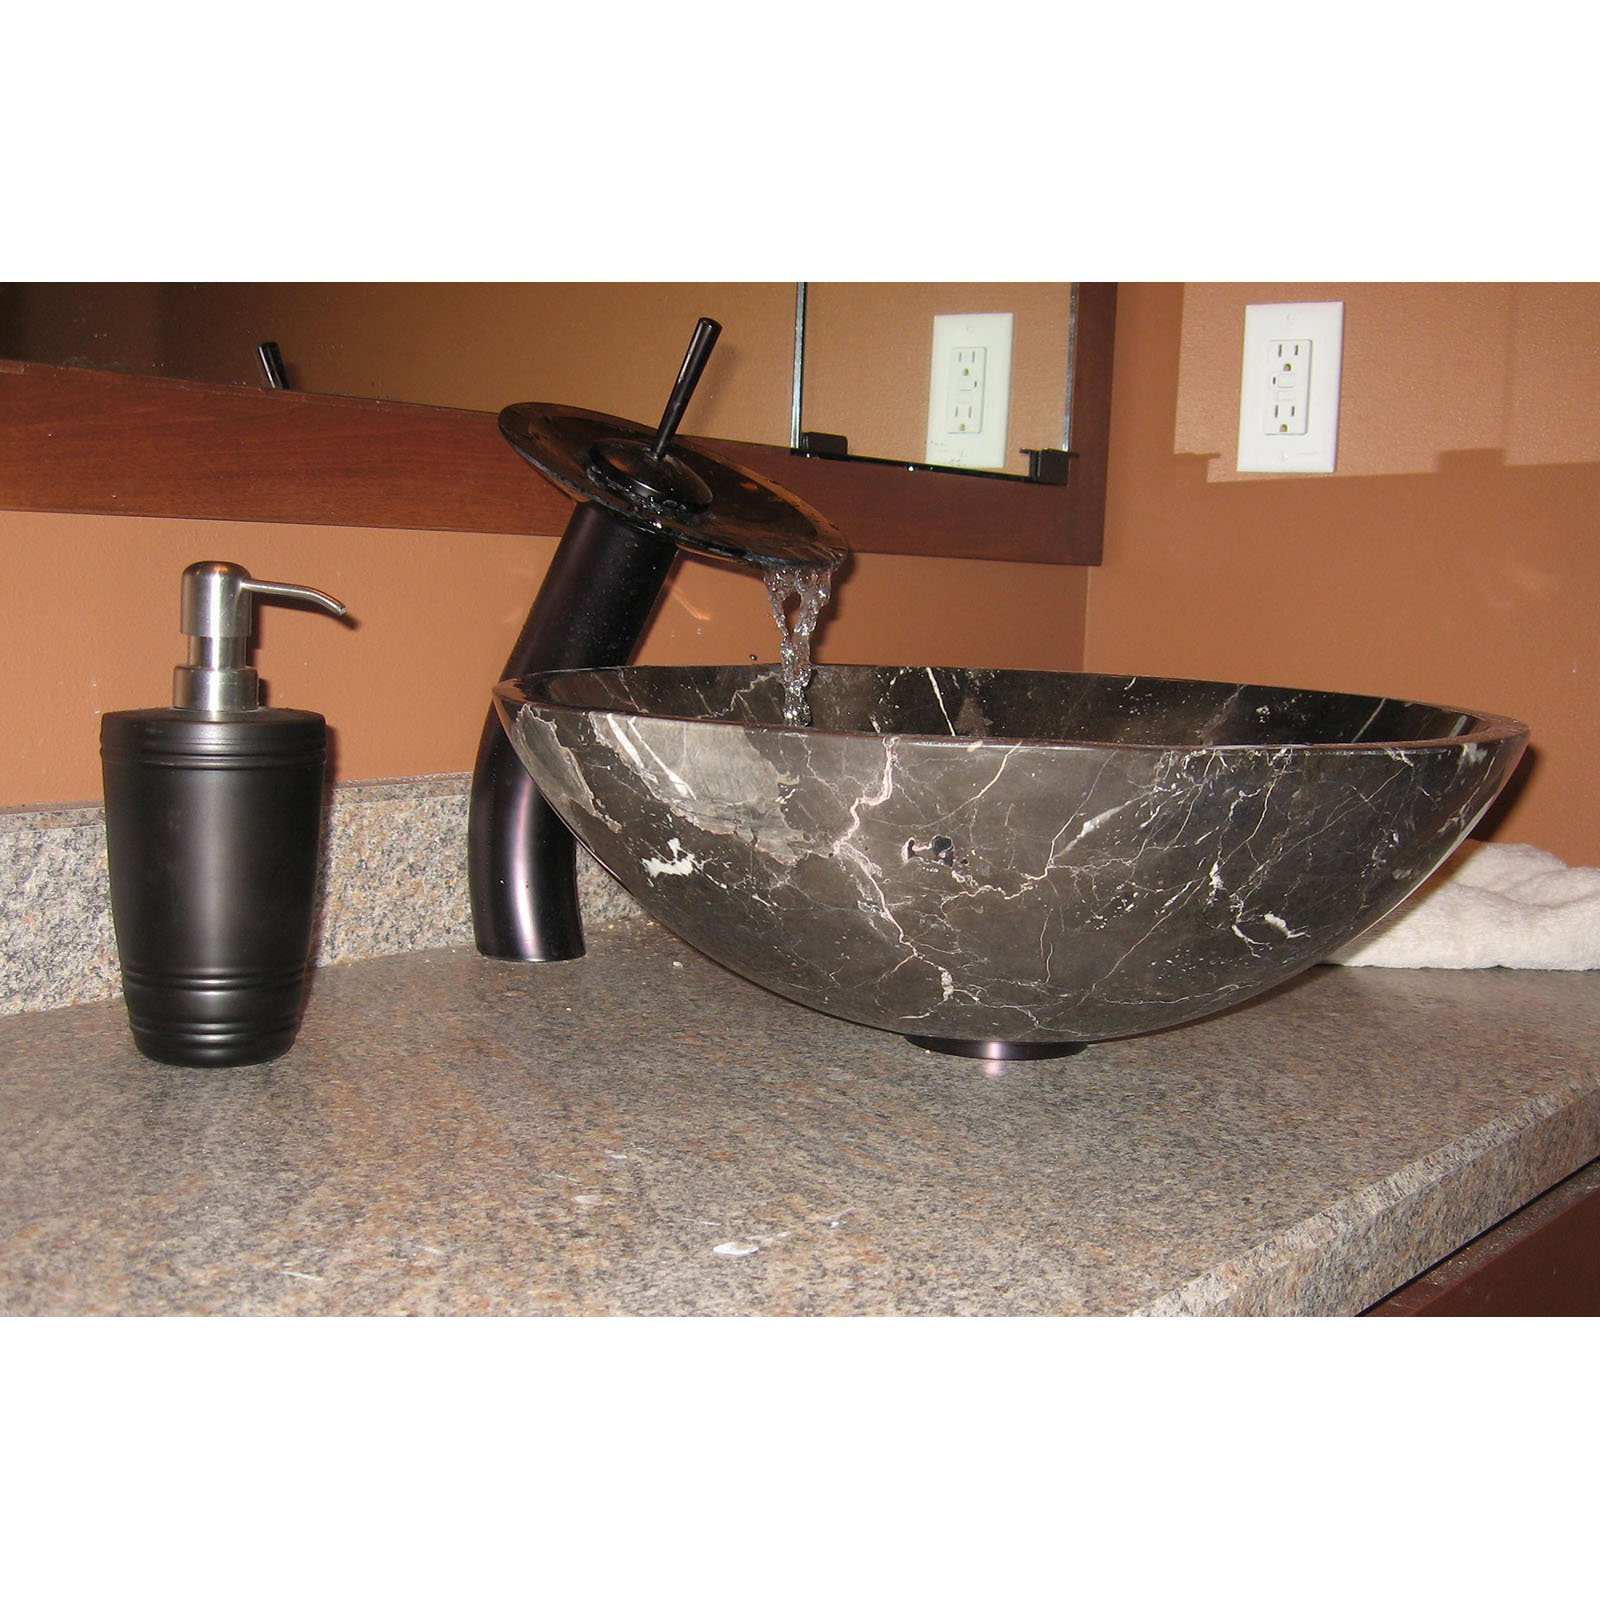 Novatto GF-001ORB-T Oil Rubbed Bronze Waterfall Vessel Sink Faucet